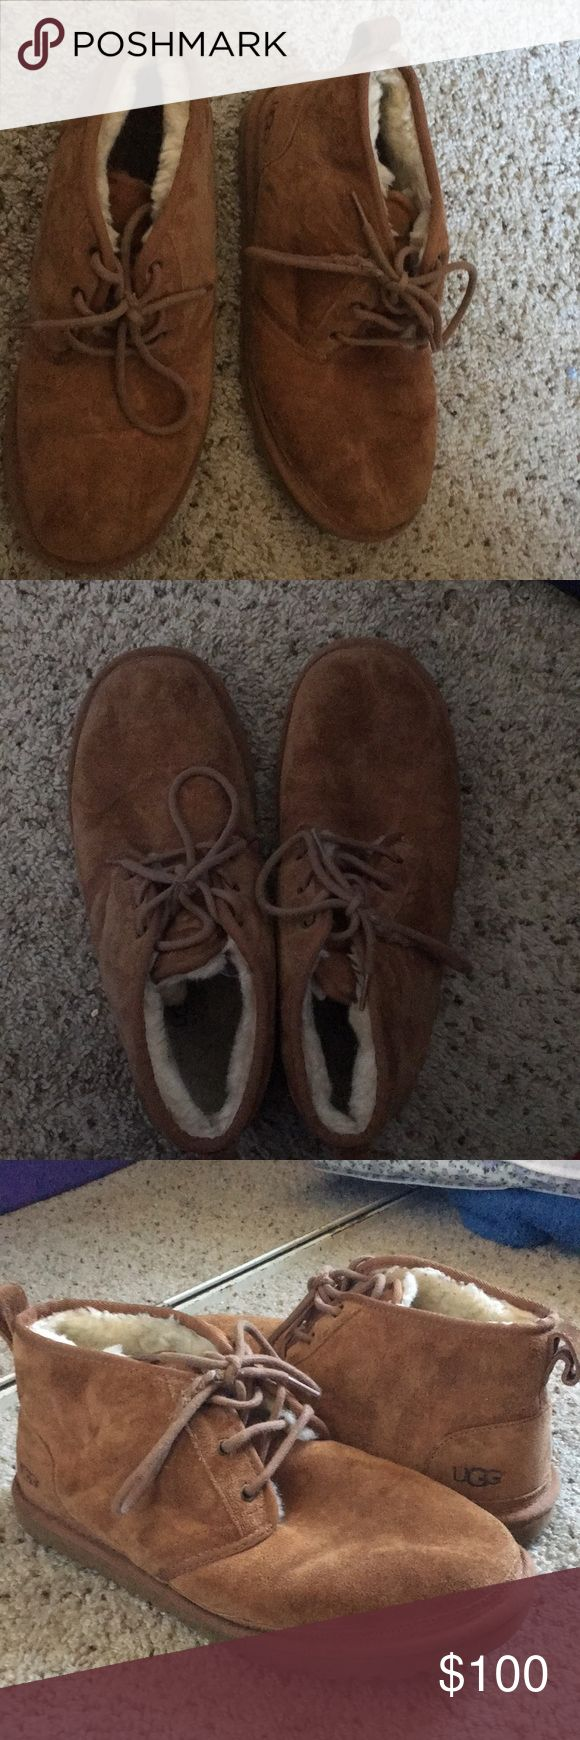 Mens Ugg boots Size 11 men's Ugg boots great condition, originally 150. UGG Shoes Winter & Rain Boots